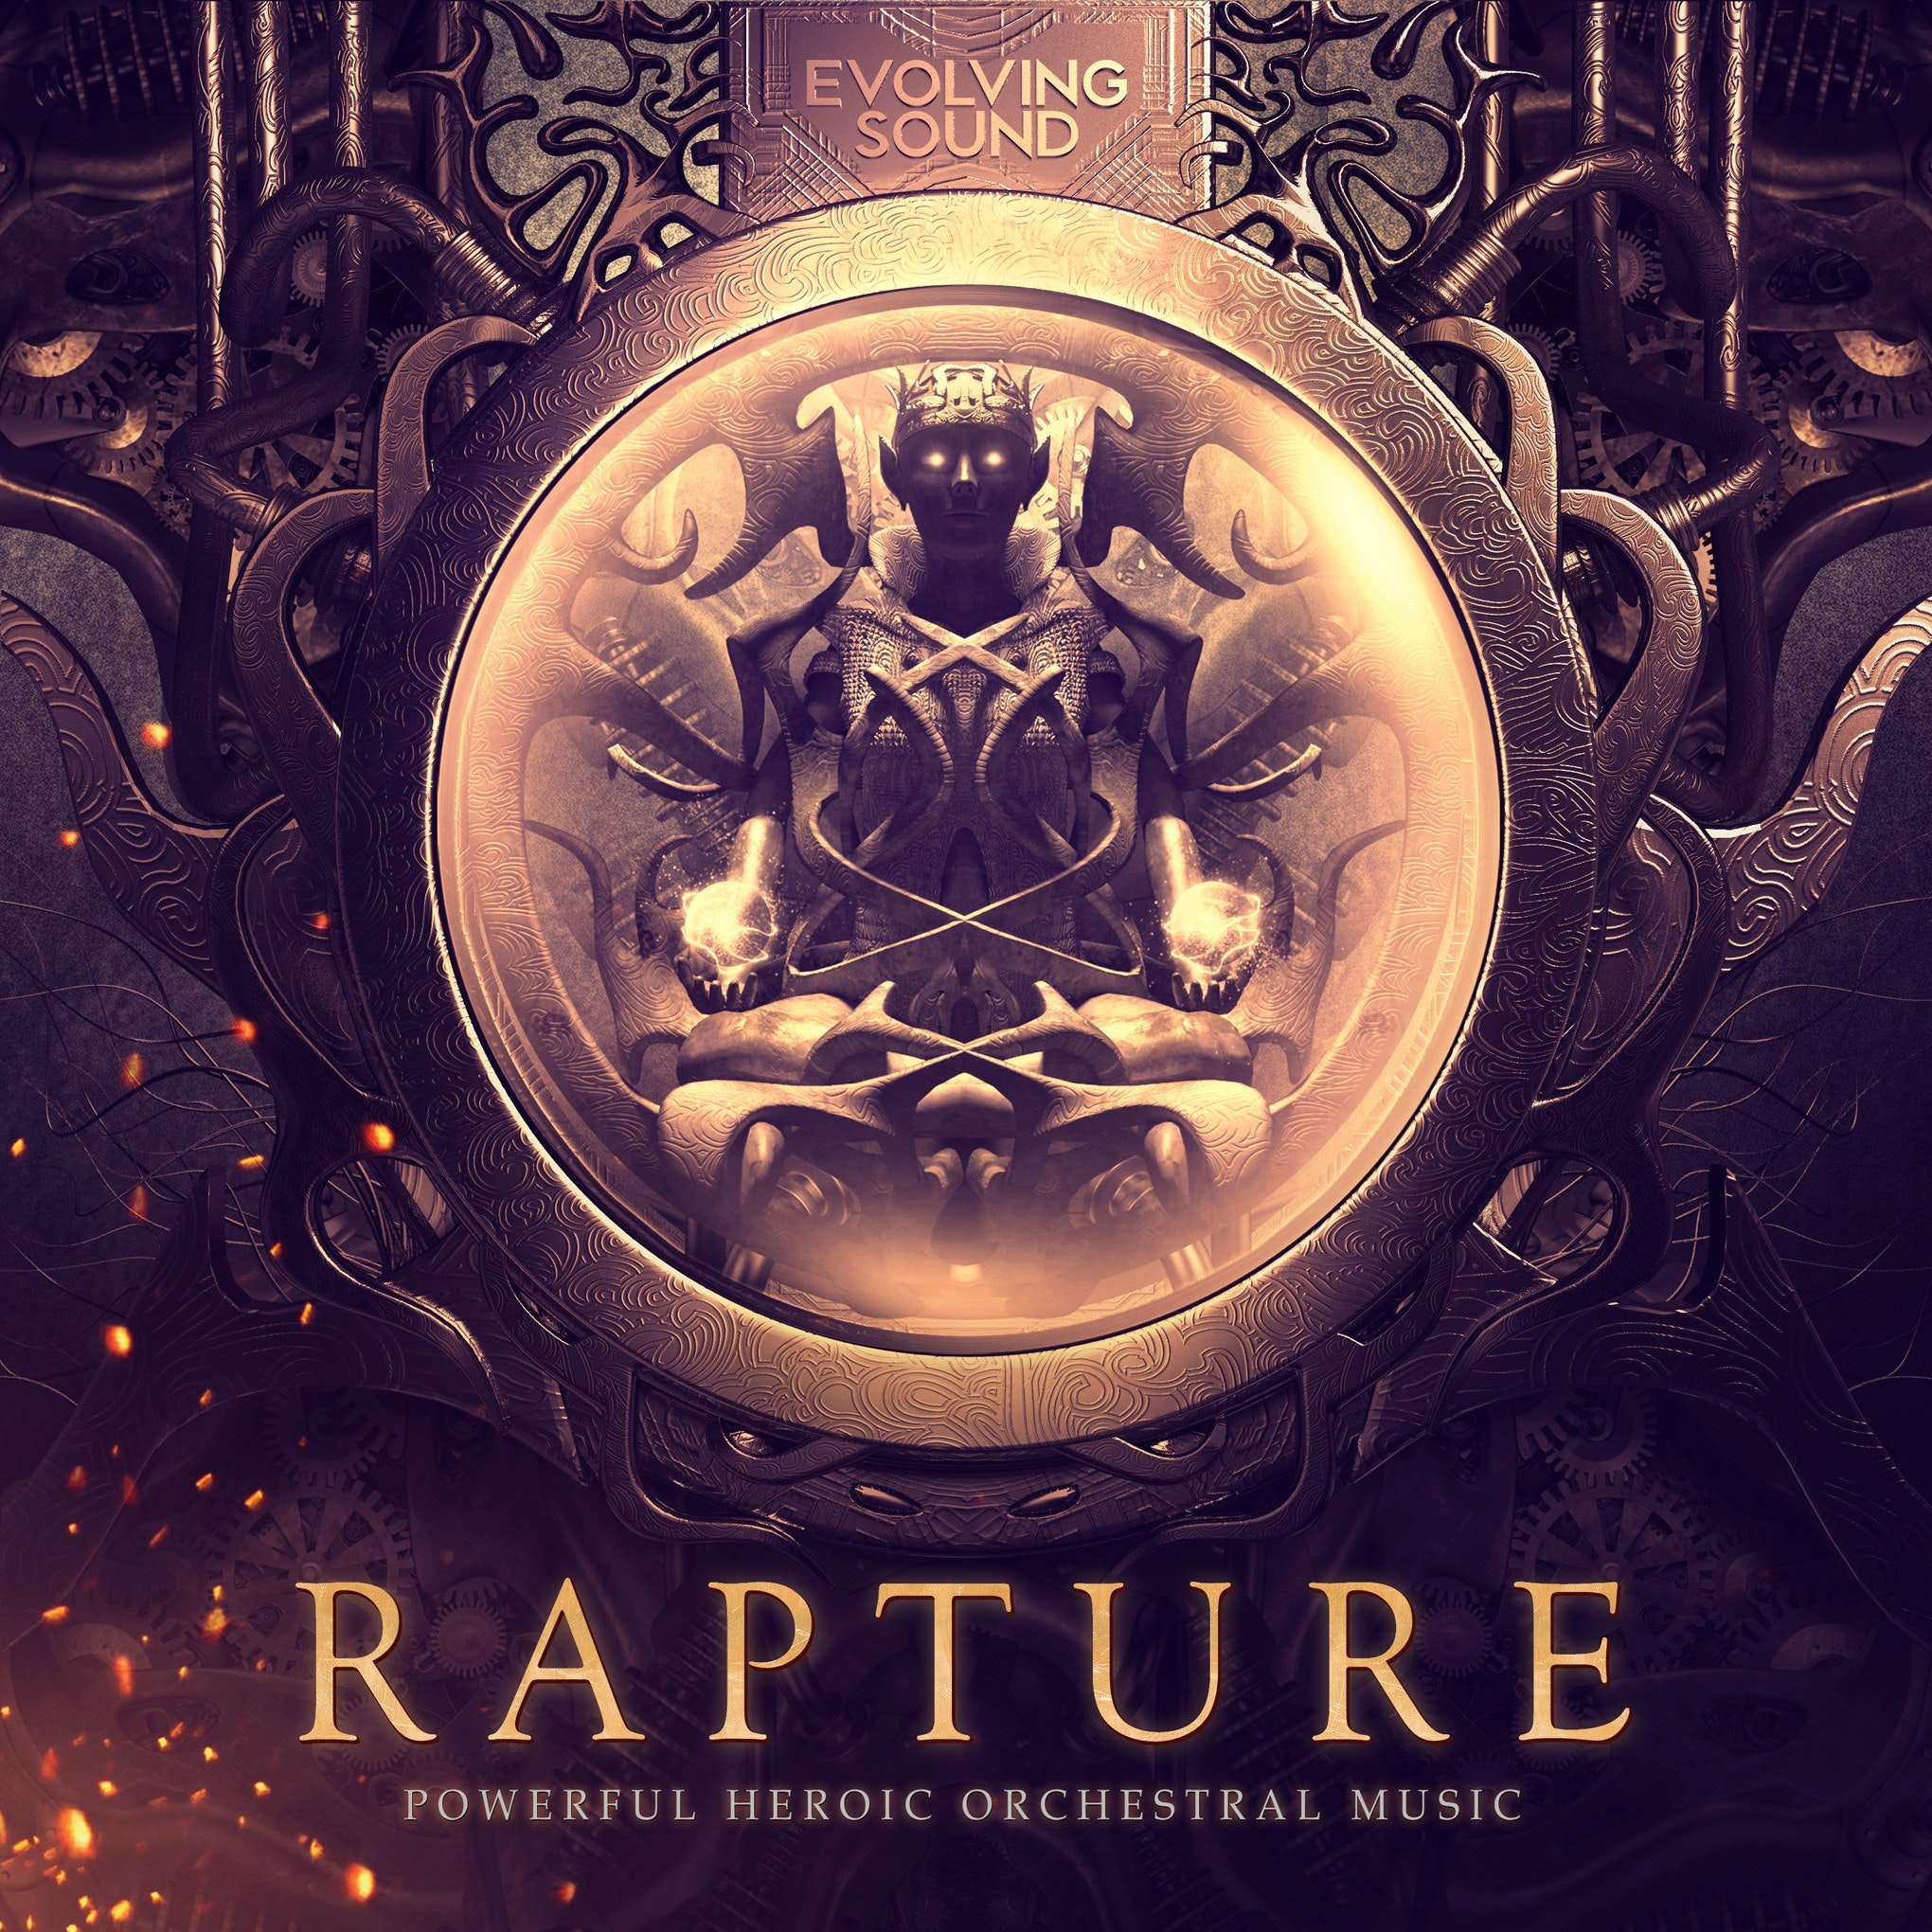 rapture album cover